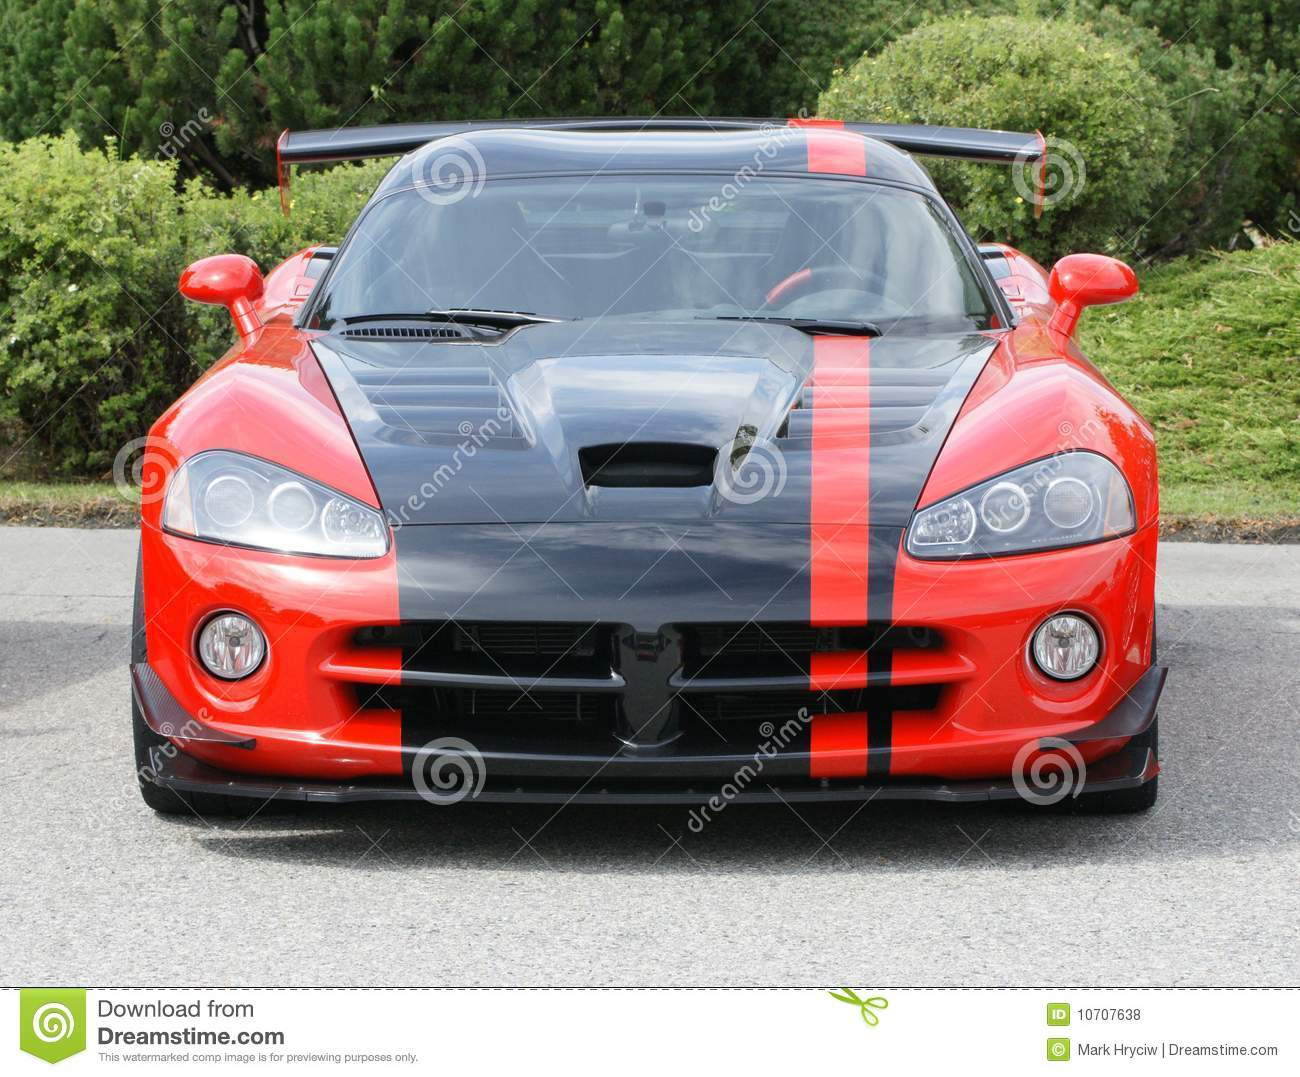 American Muscle Car Red Stock Photo Image Of Muscle 10707638